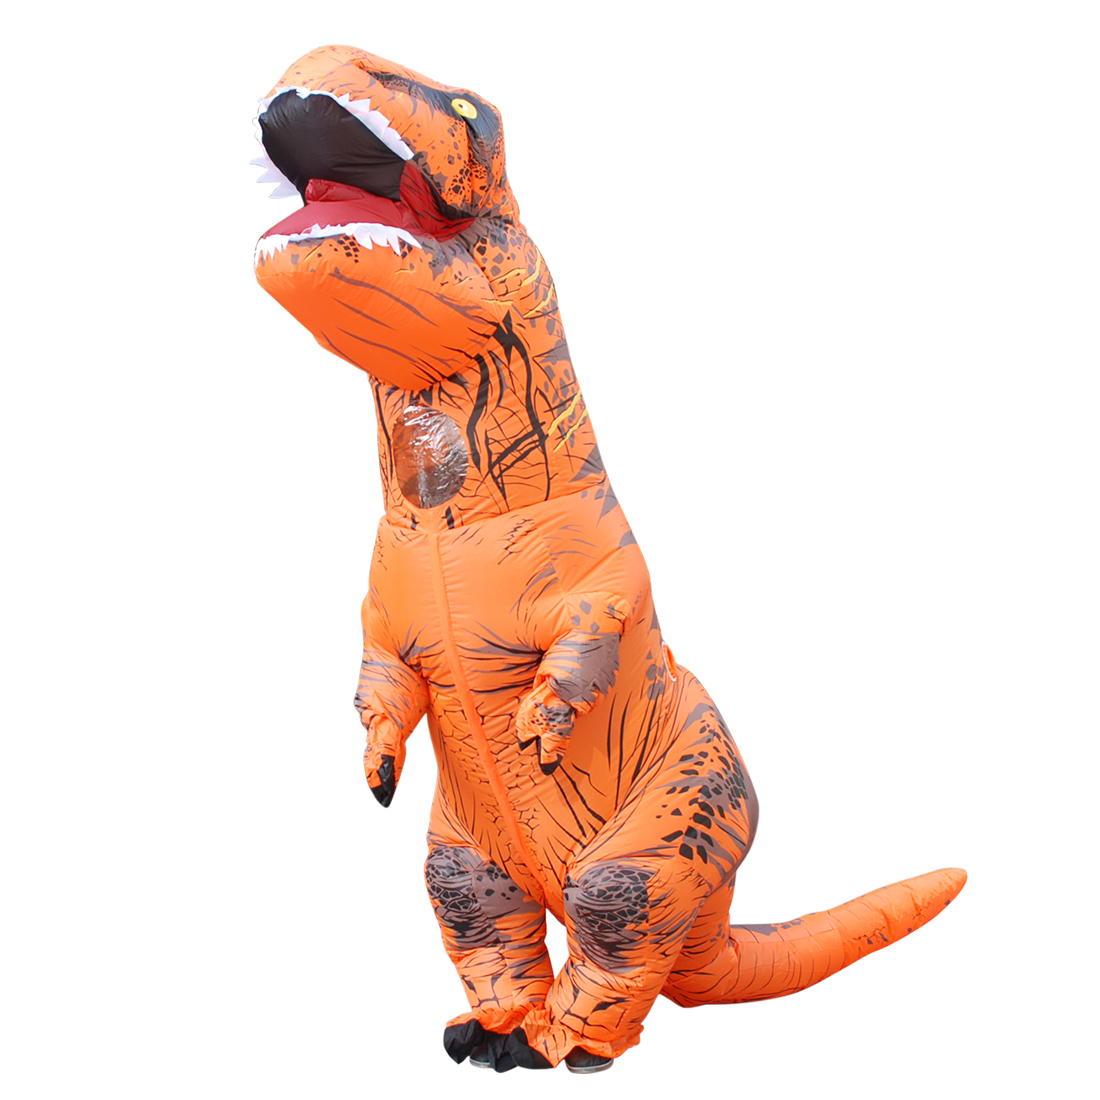 DANXEN Orange T-REX Costumes Inflatable Dinosaur Costume Tyrannosaurus